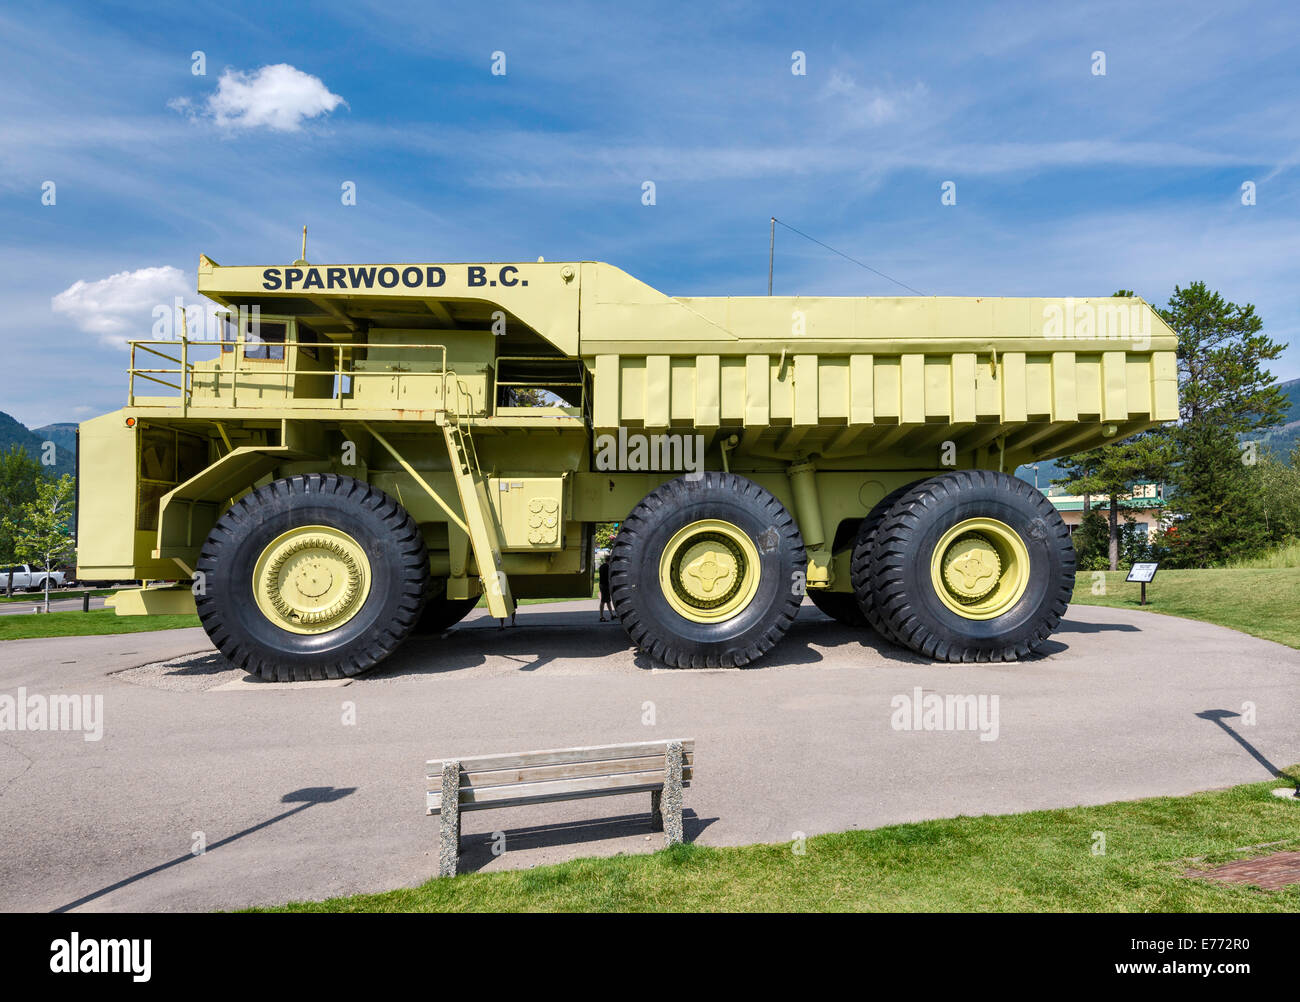 terex titan haul truck for open pit mines the largest truck in the stock photo 73299940 alamy. Black Bedroom Furniture Sets. Home Design Ideas